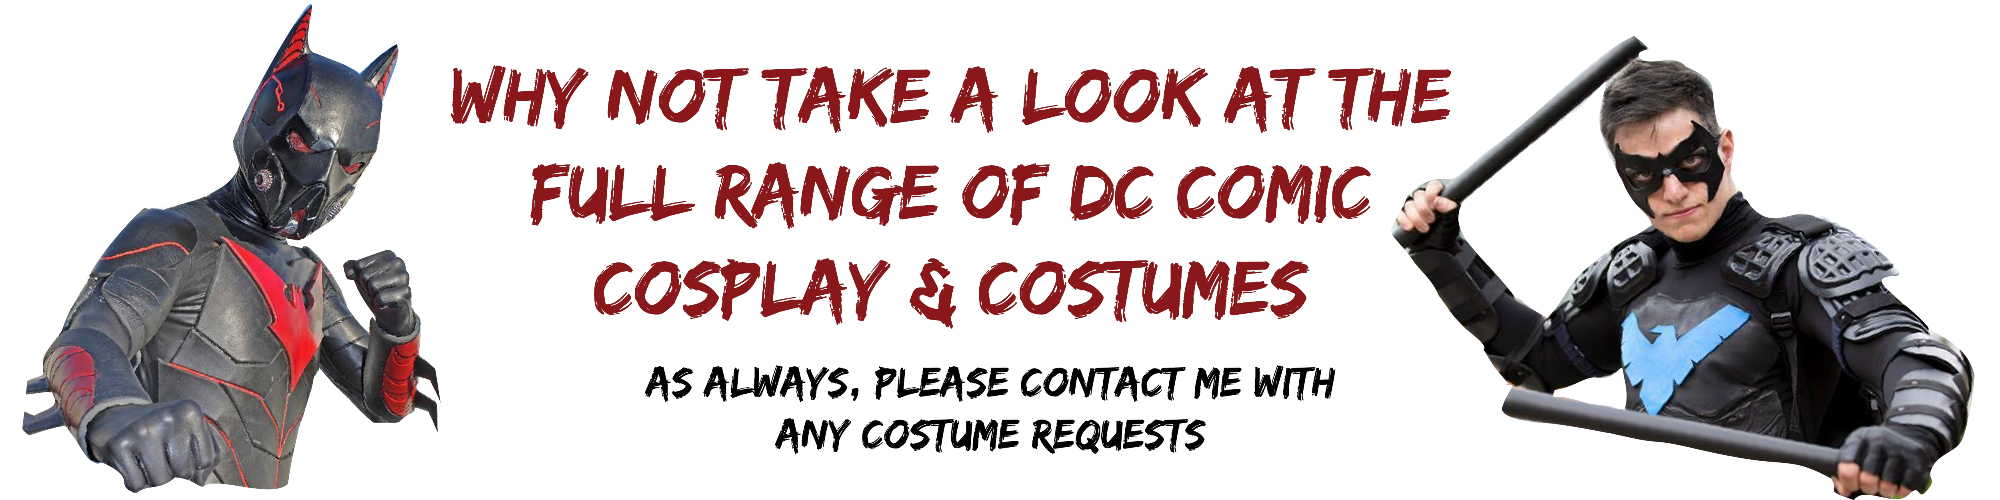 DC Comic Con Costumes & Accessories